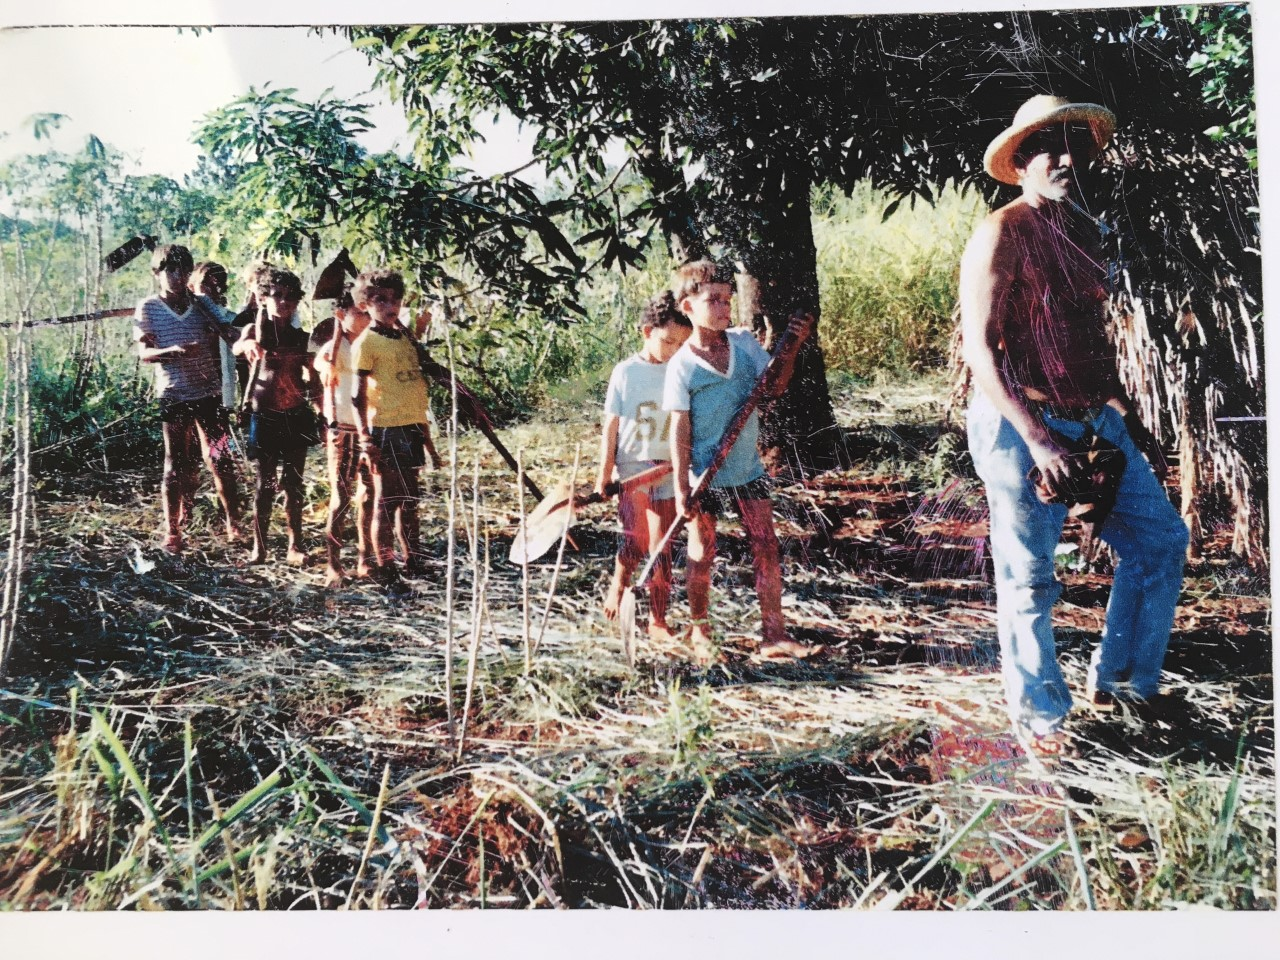 Weller at his Grandfather's Coffee Plantation in Brazil for Storytelling Week